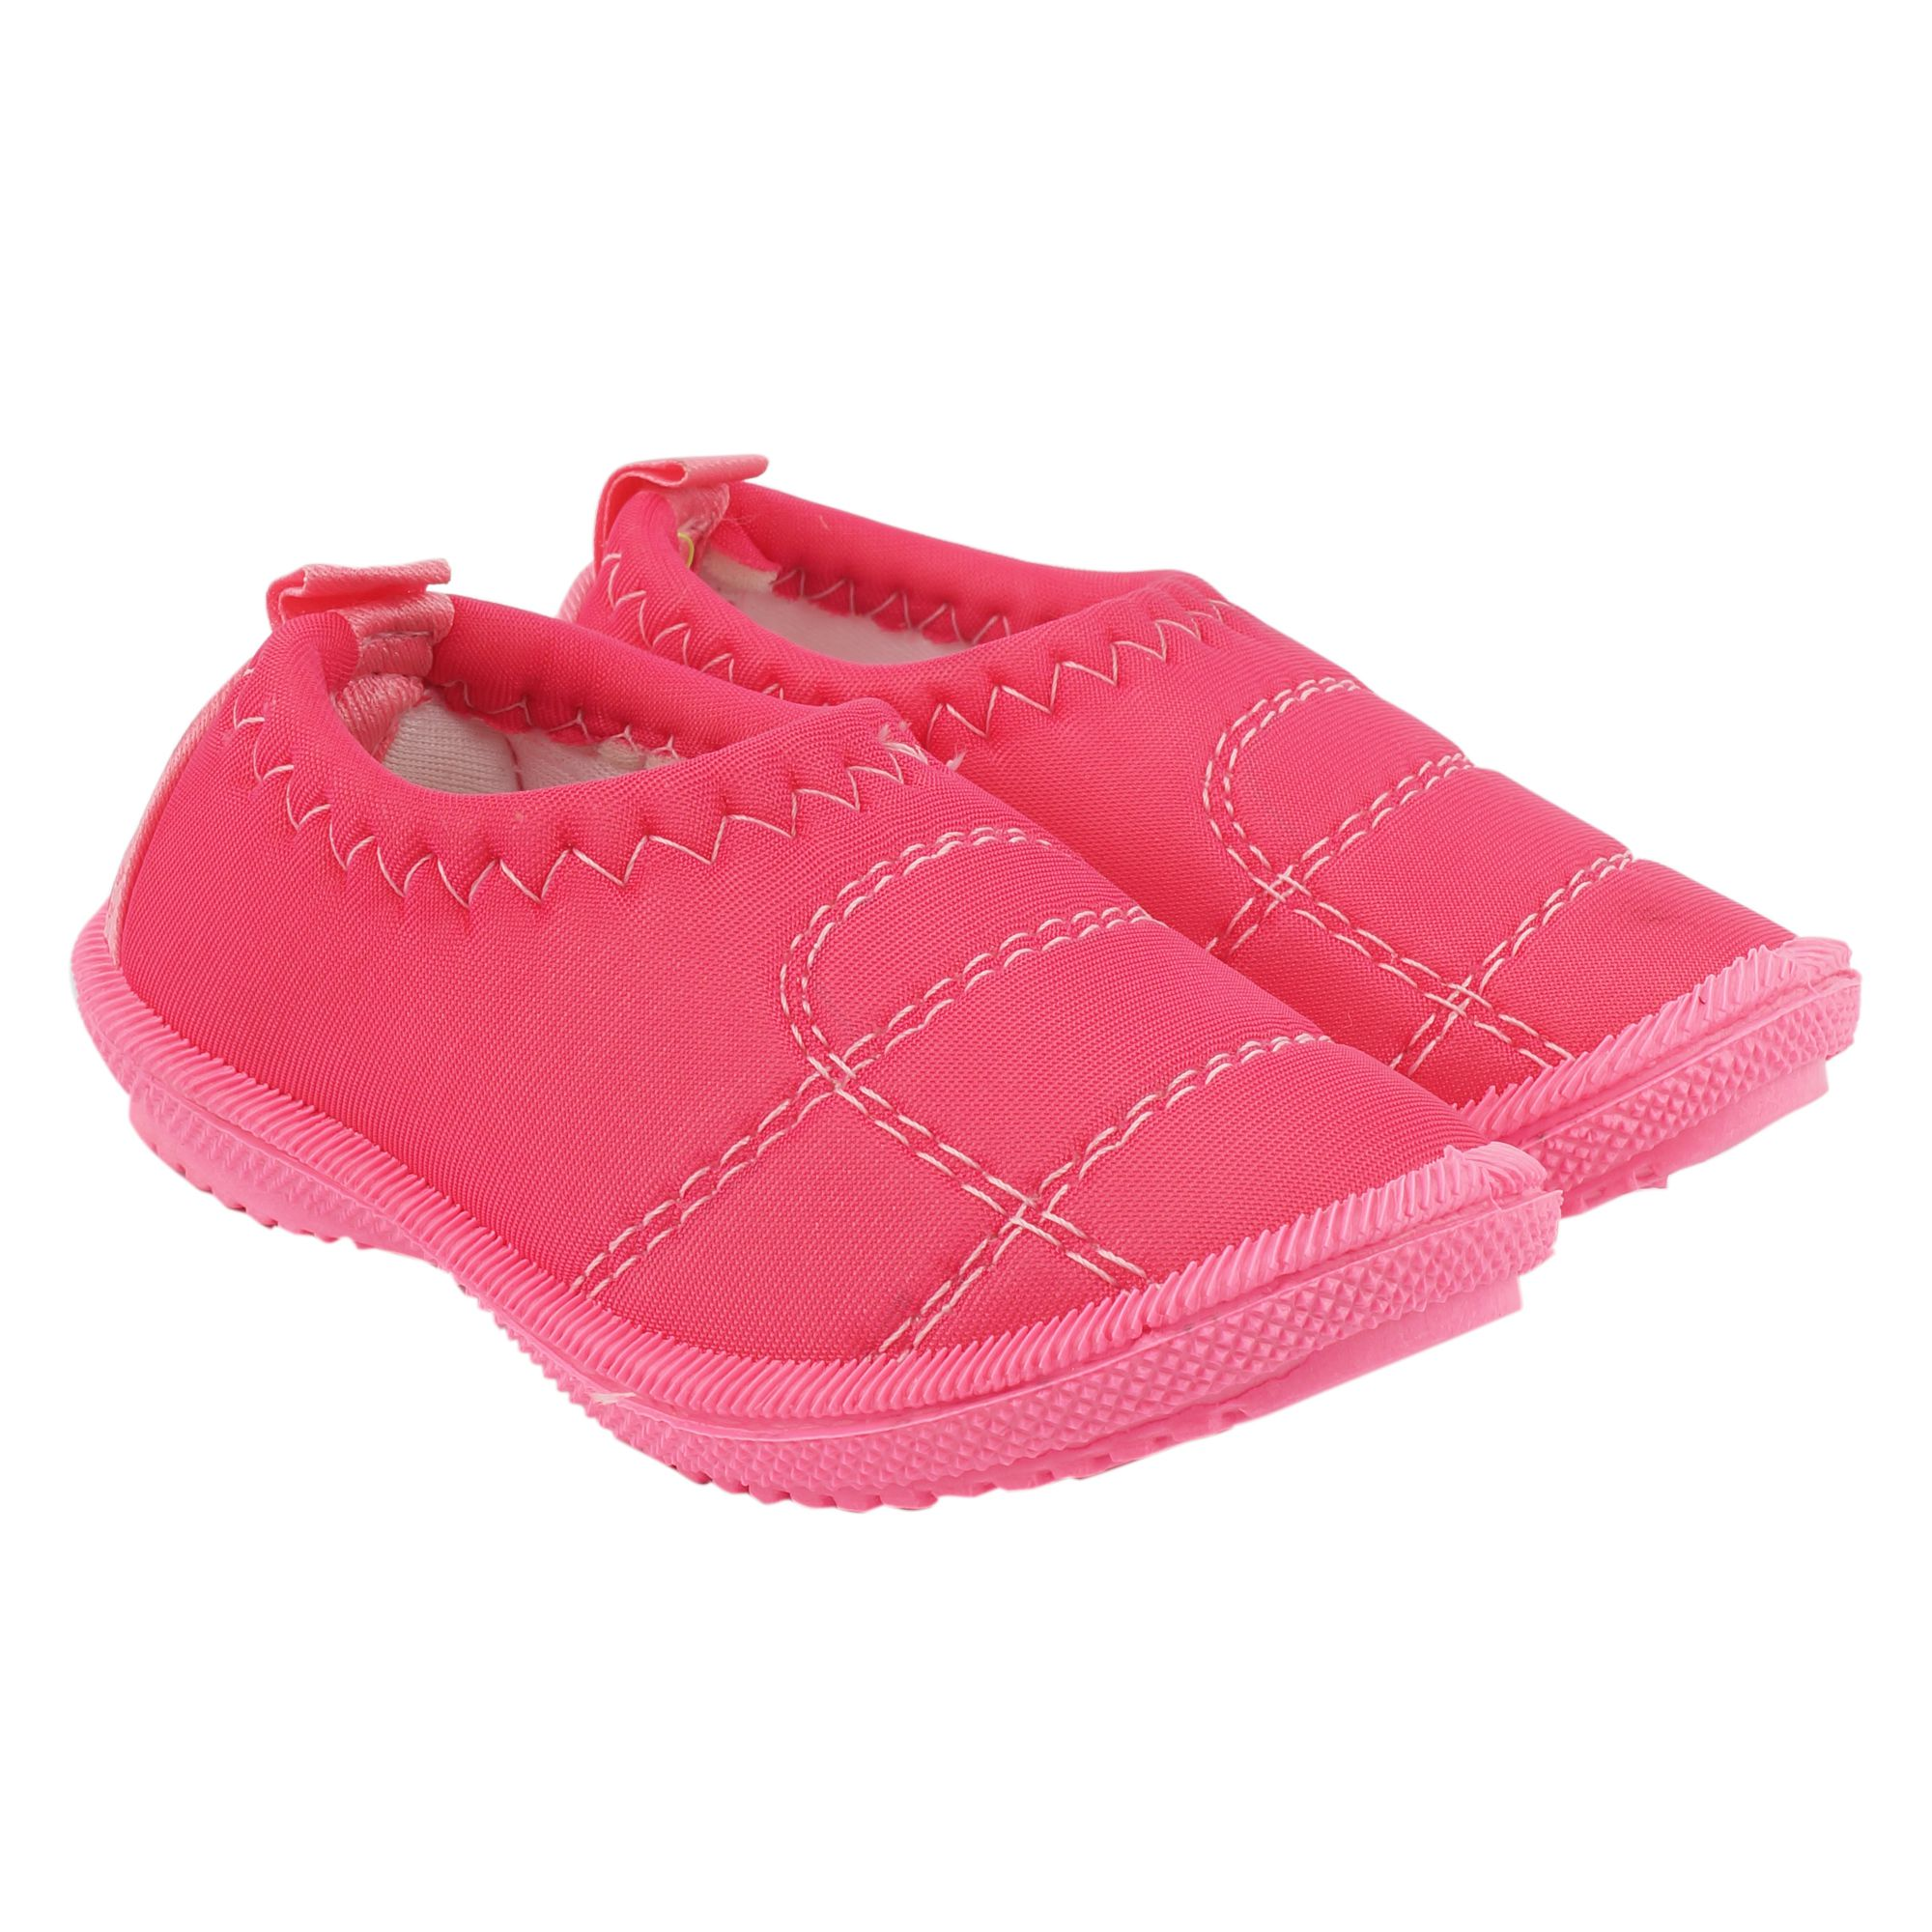 BUNNIES GIRLS PINK BELLIES(PINK) pictures cheap sale largest supplier fashion Style C9rIvwB1m